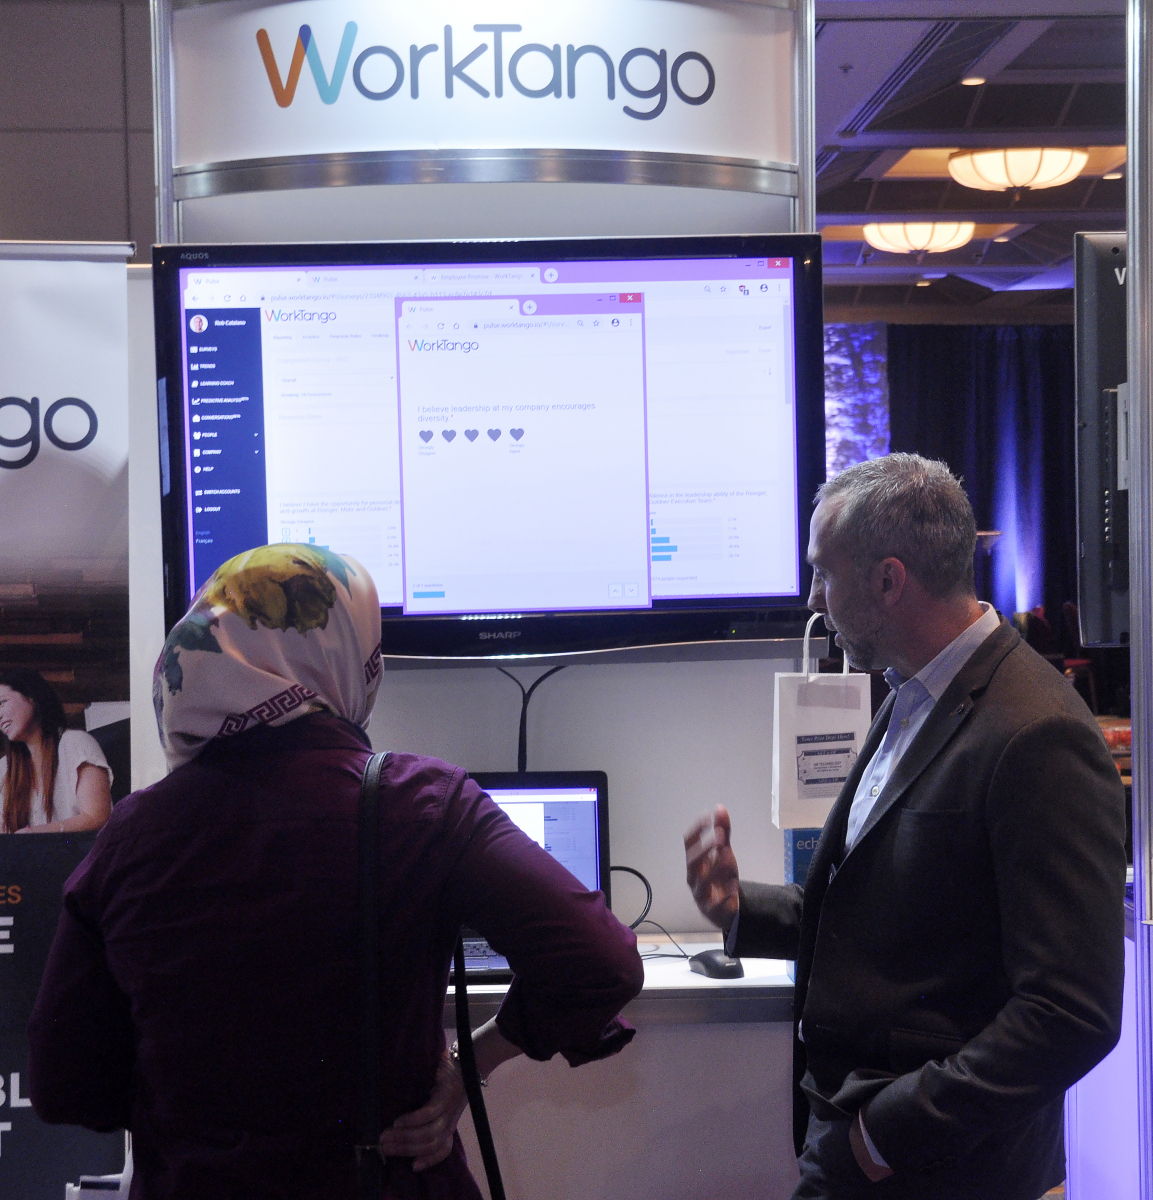 Learning about what Work Tango offers